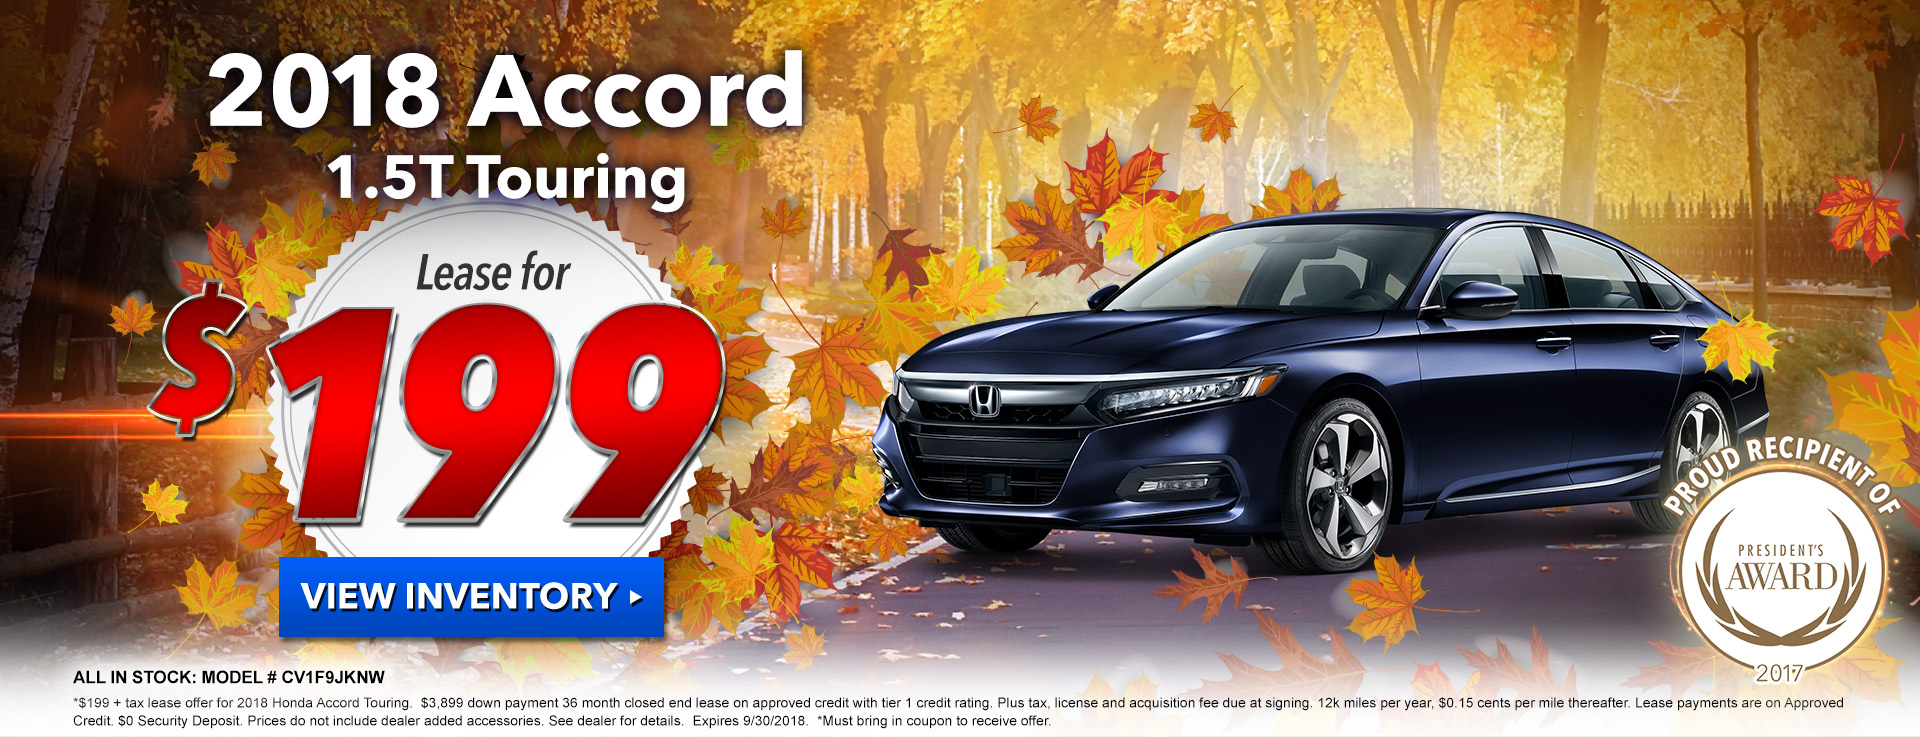 Honda Accord Touring $199 Lease